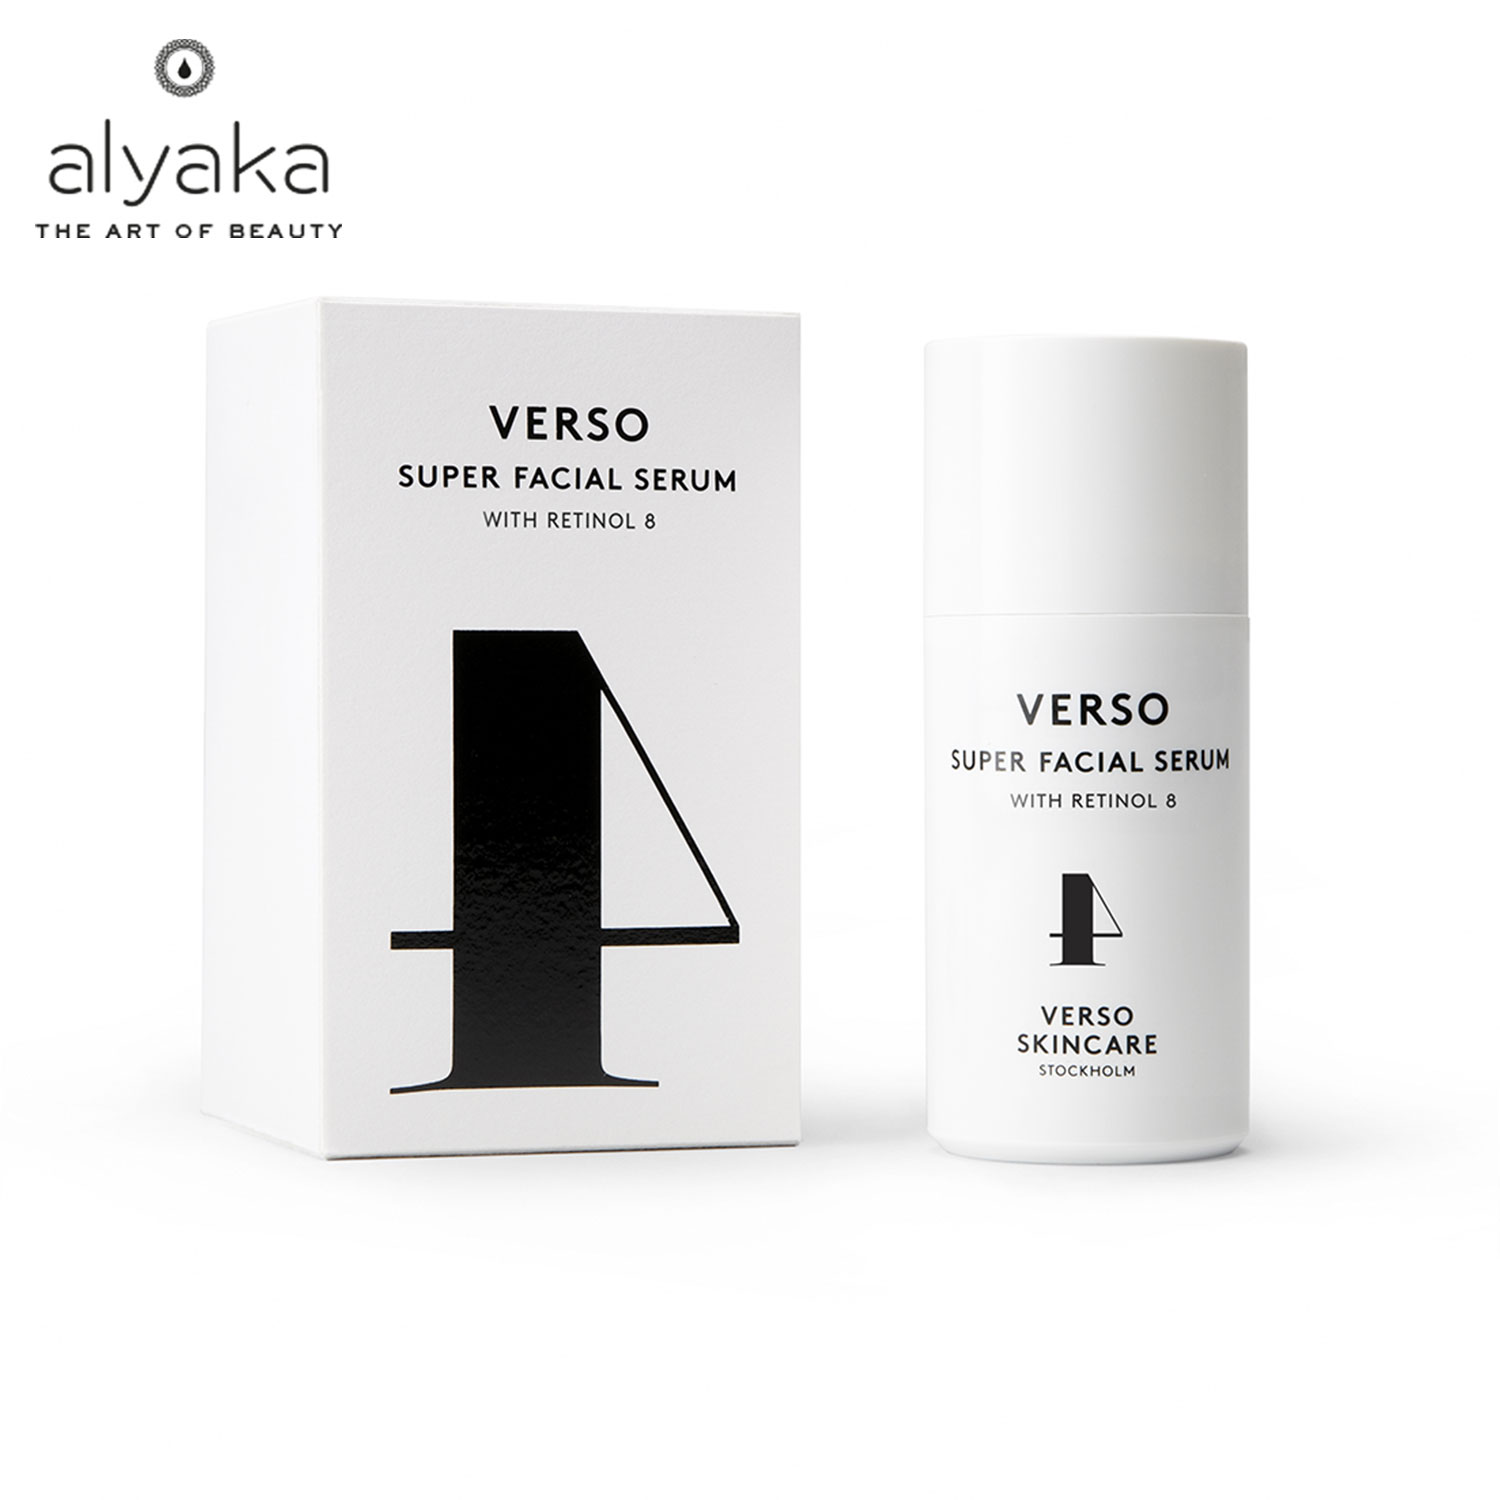 Verso #4 Super Facial Serum